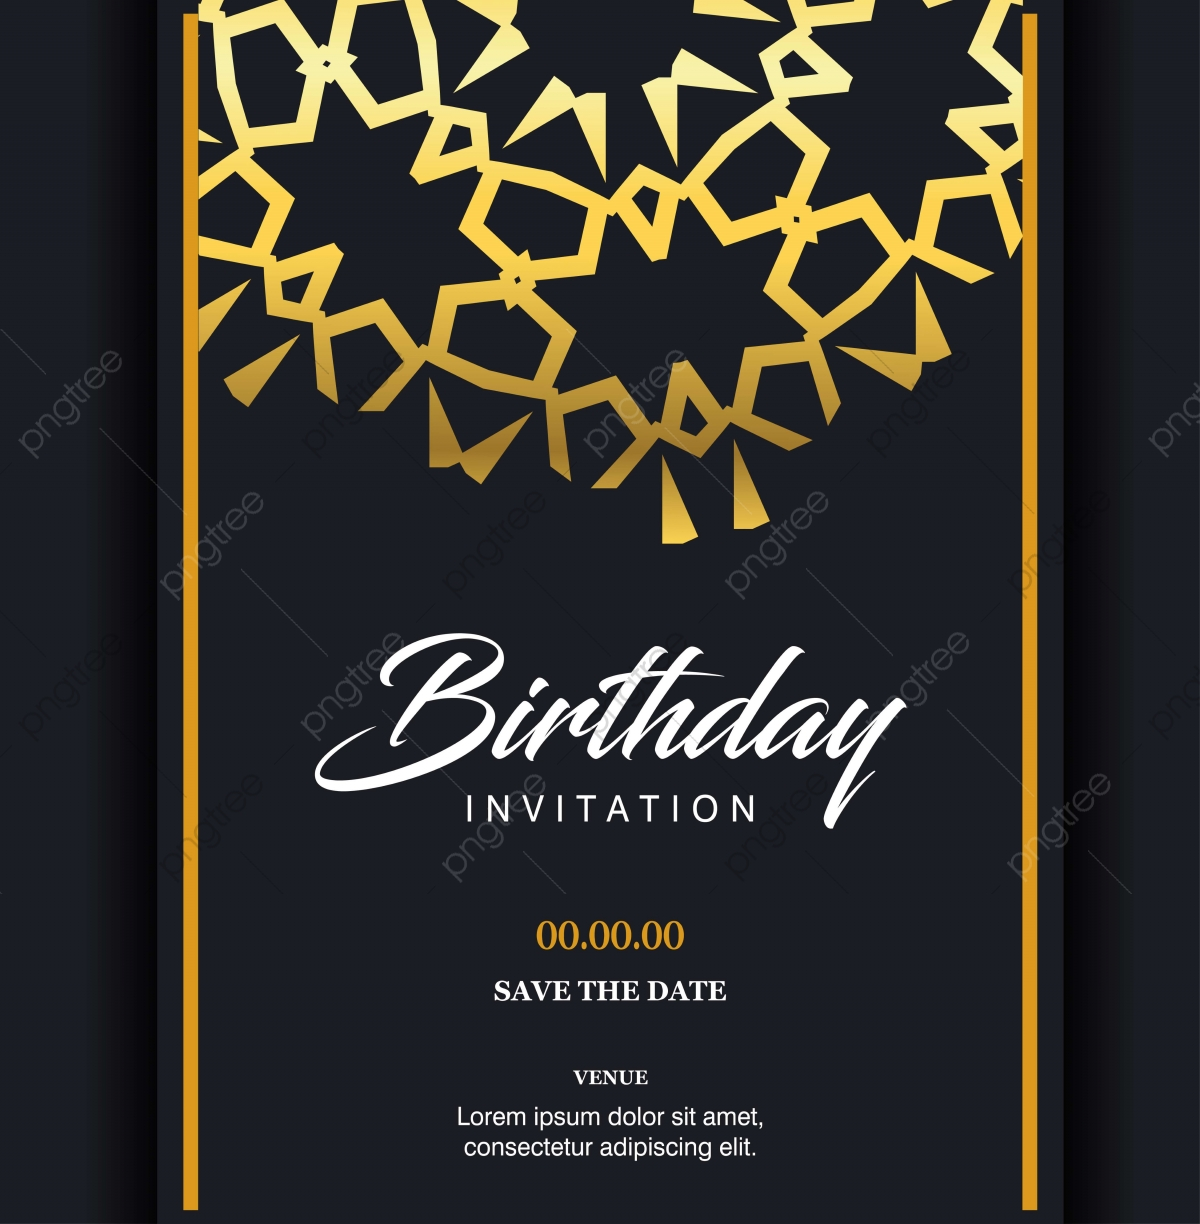 Commercial Use Resource Upgrade To Premium Plan And Get License AuthorizationUpgradeNow Birthday Card Design